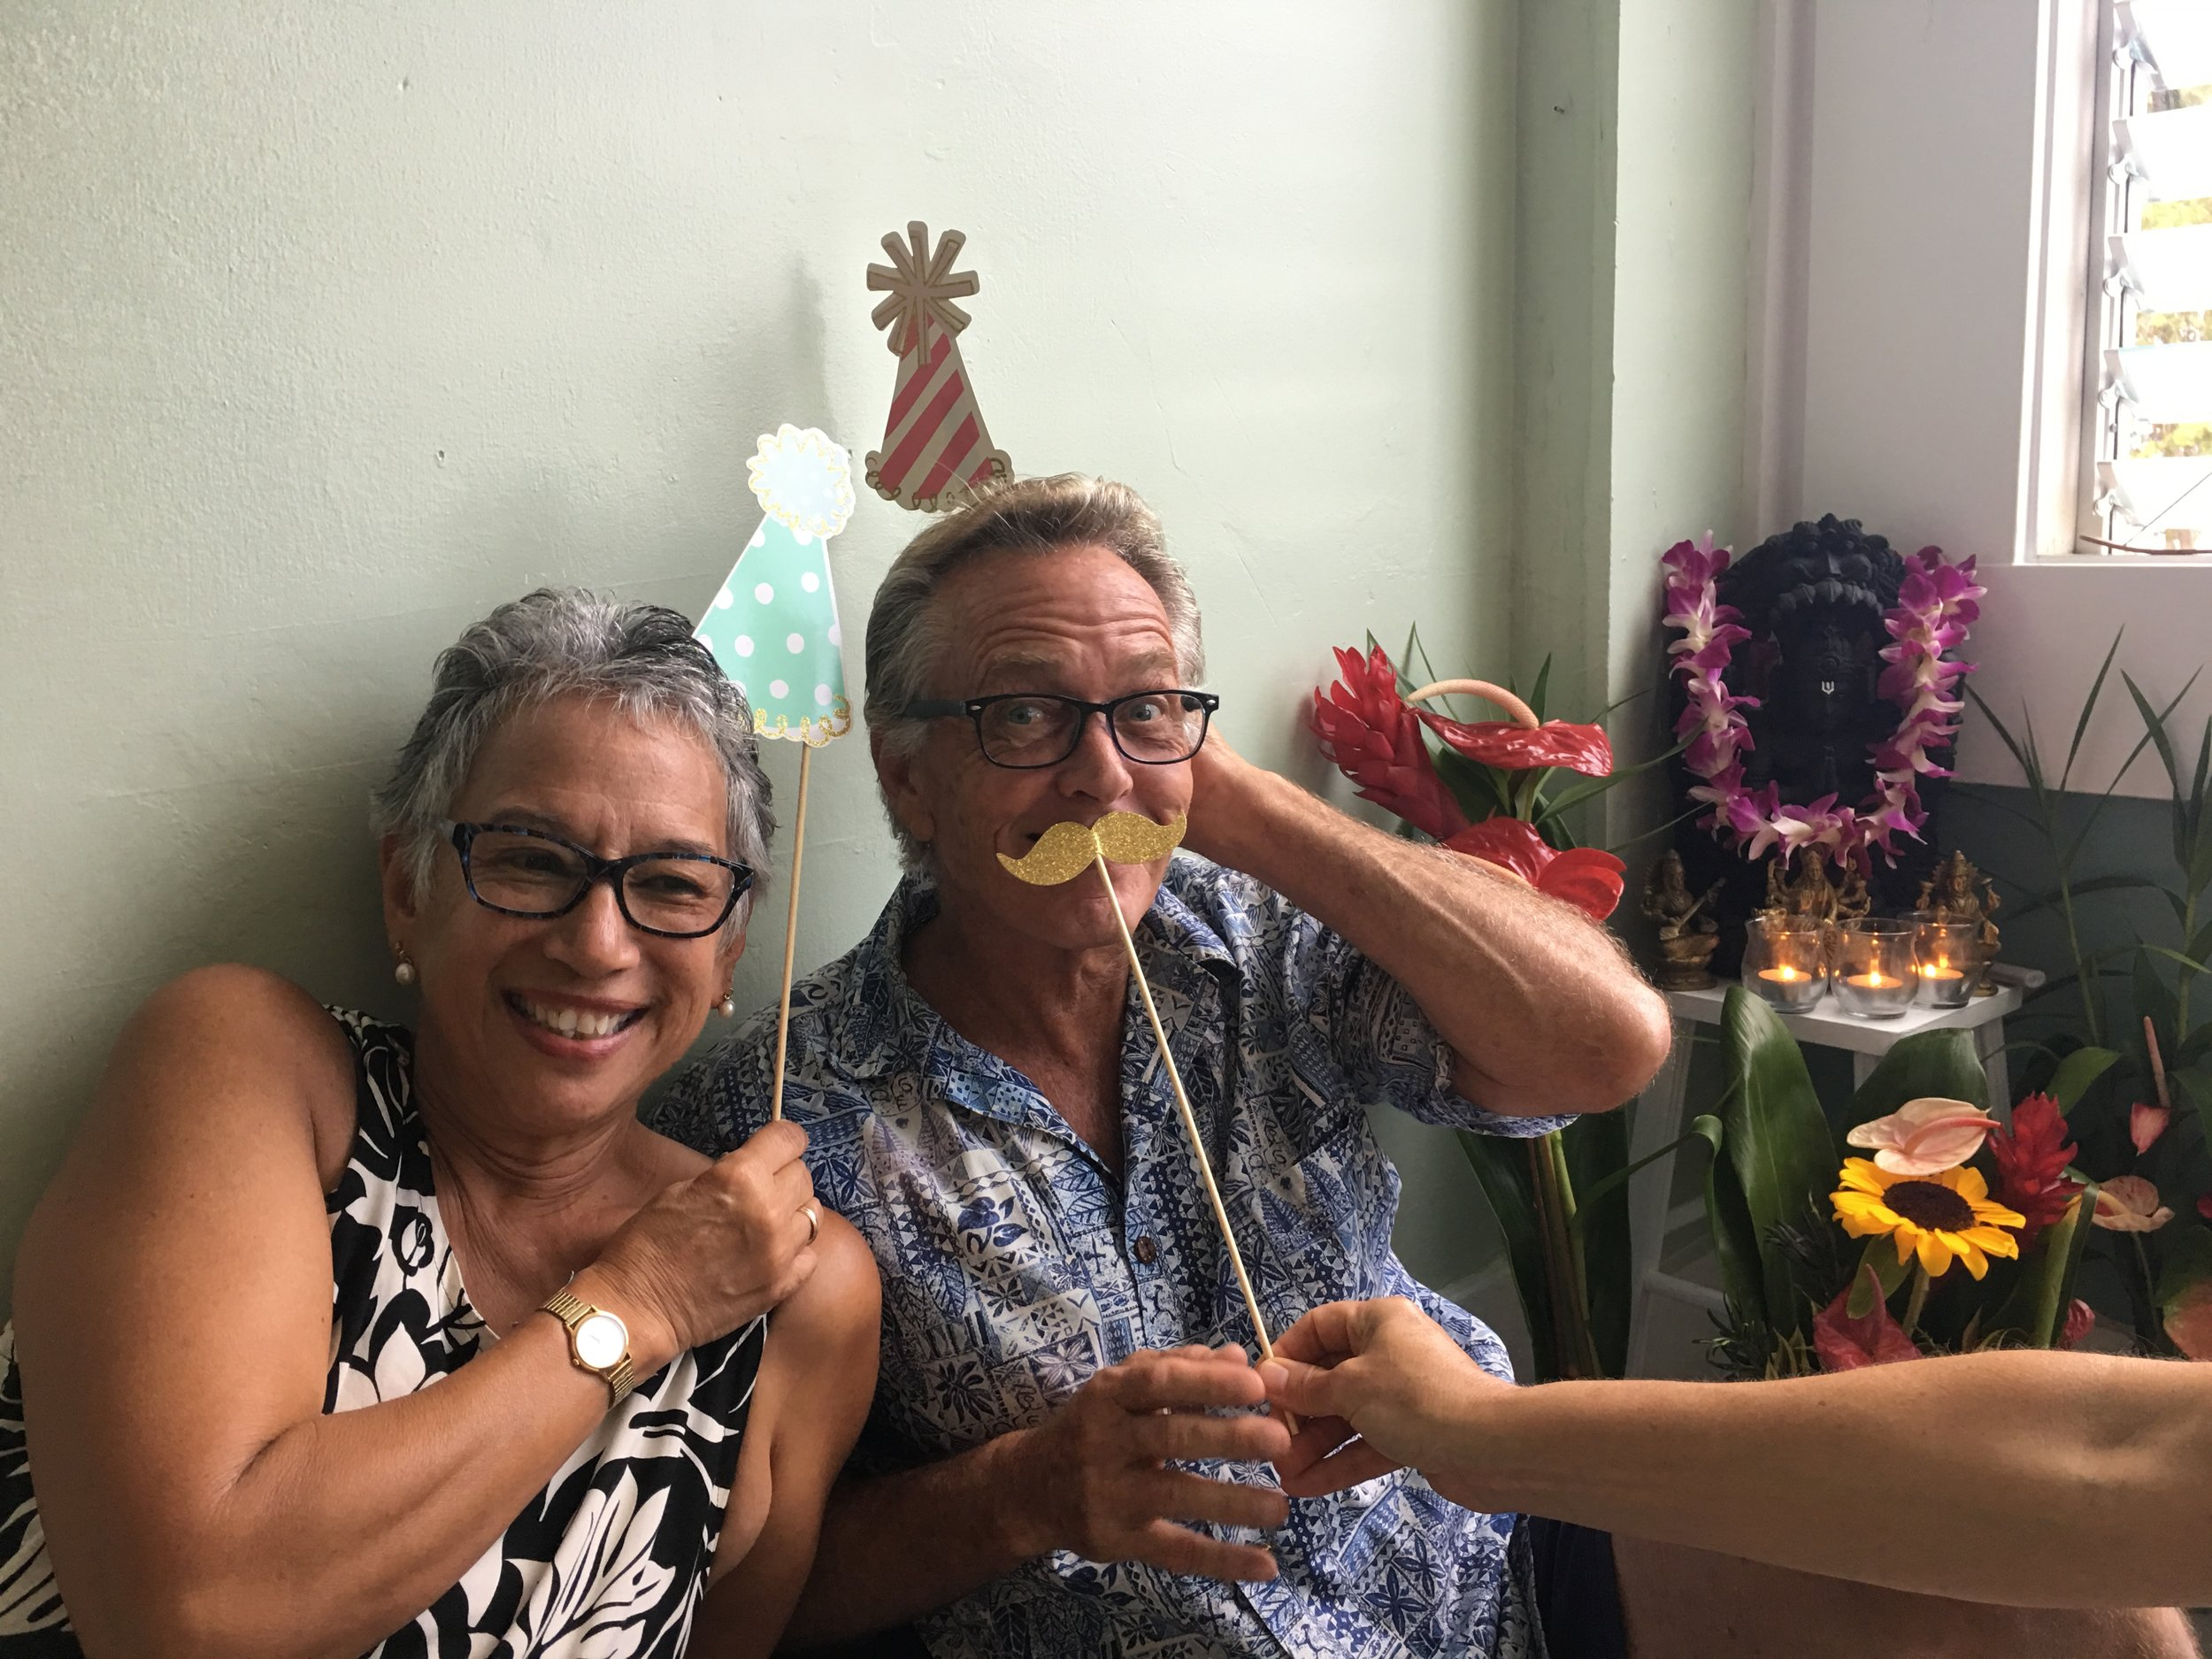 Momi and Mark expressed the value of belonging and community in a center for yoga…and that when life hands you a mustache, best to grin and go with it.